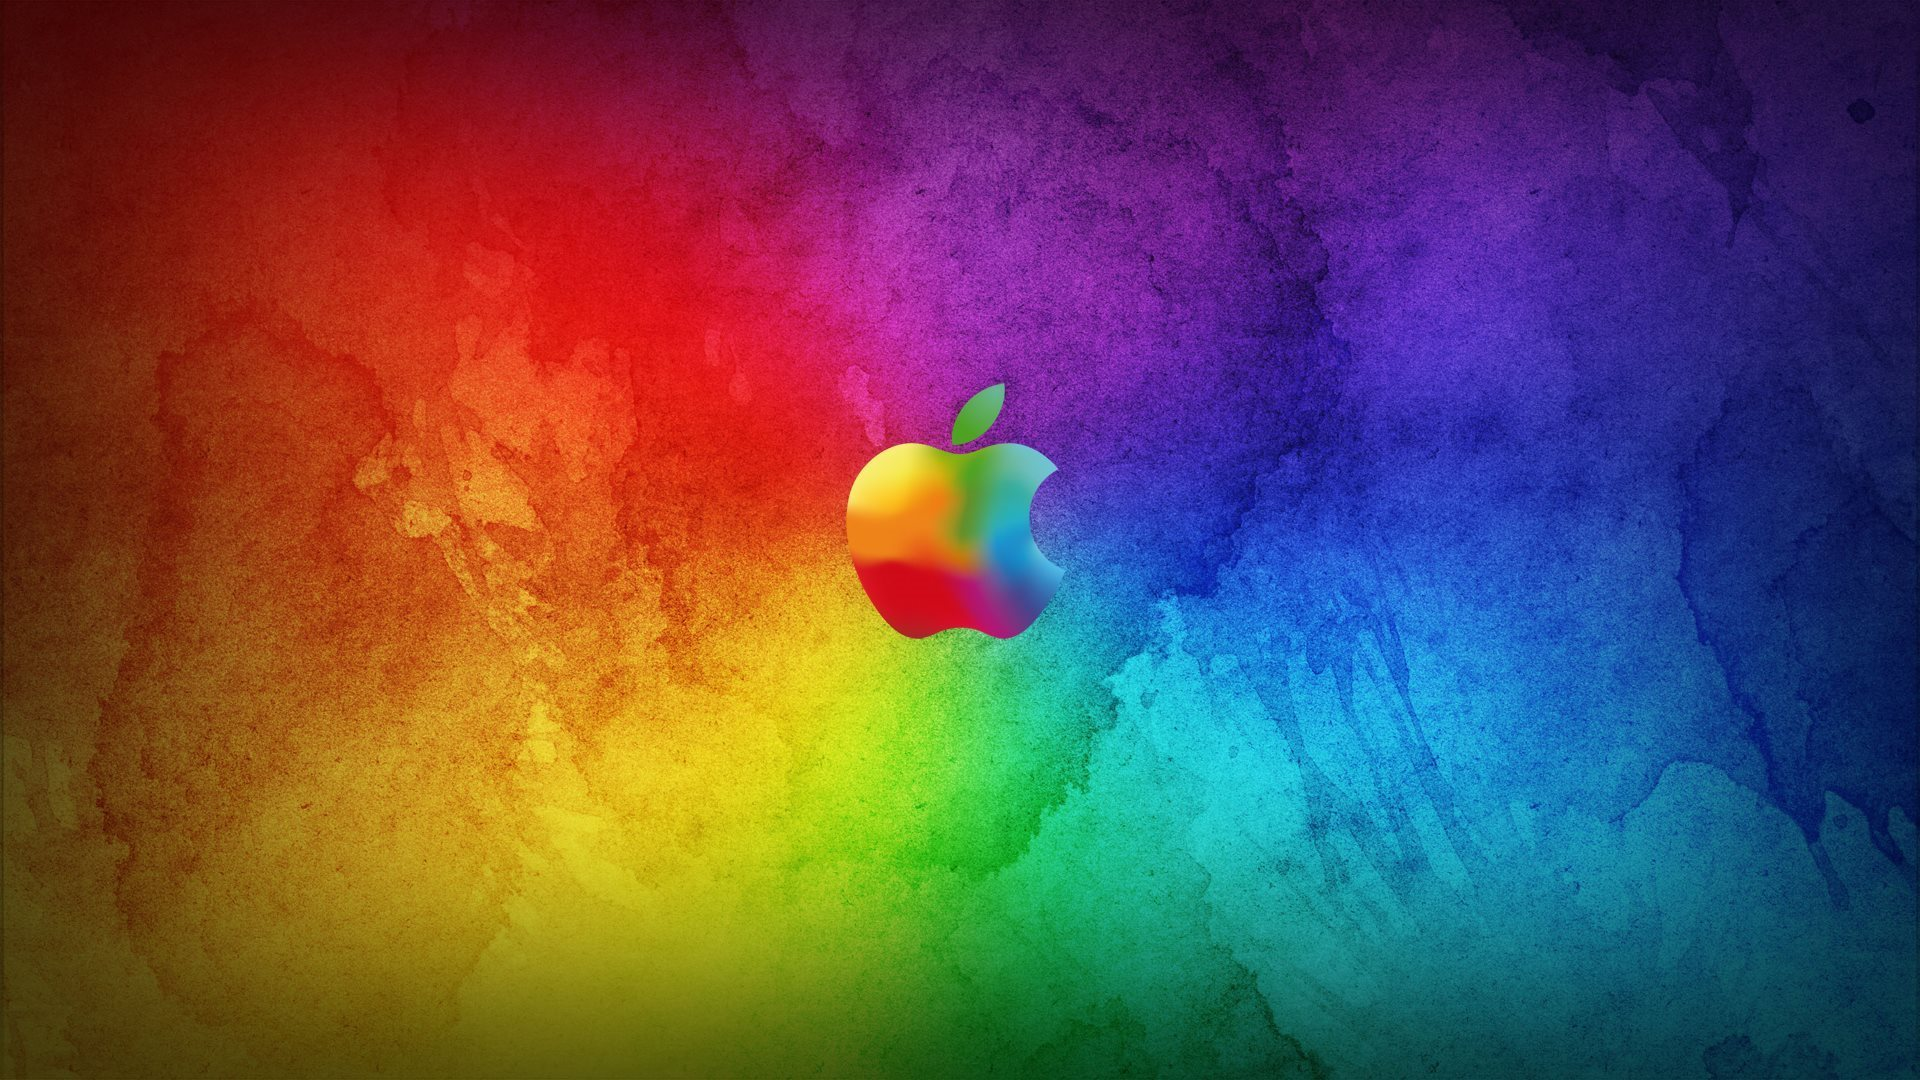 Download Amazing Colorful Apple Logo Wallpaper Full HD Wallpapers 1920x1080